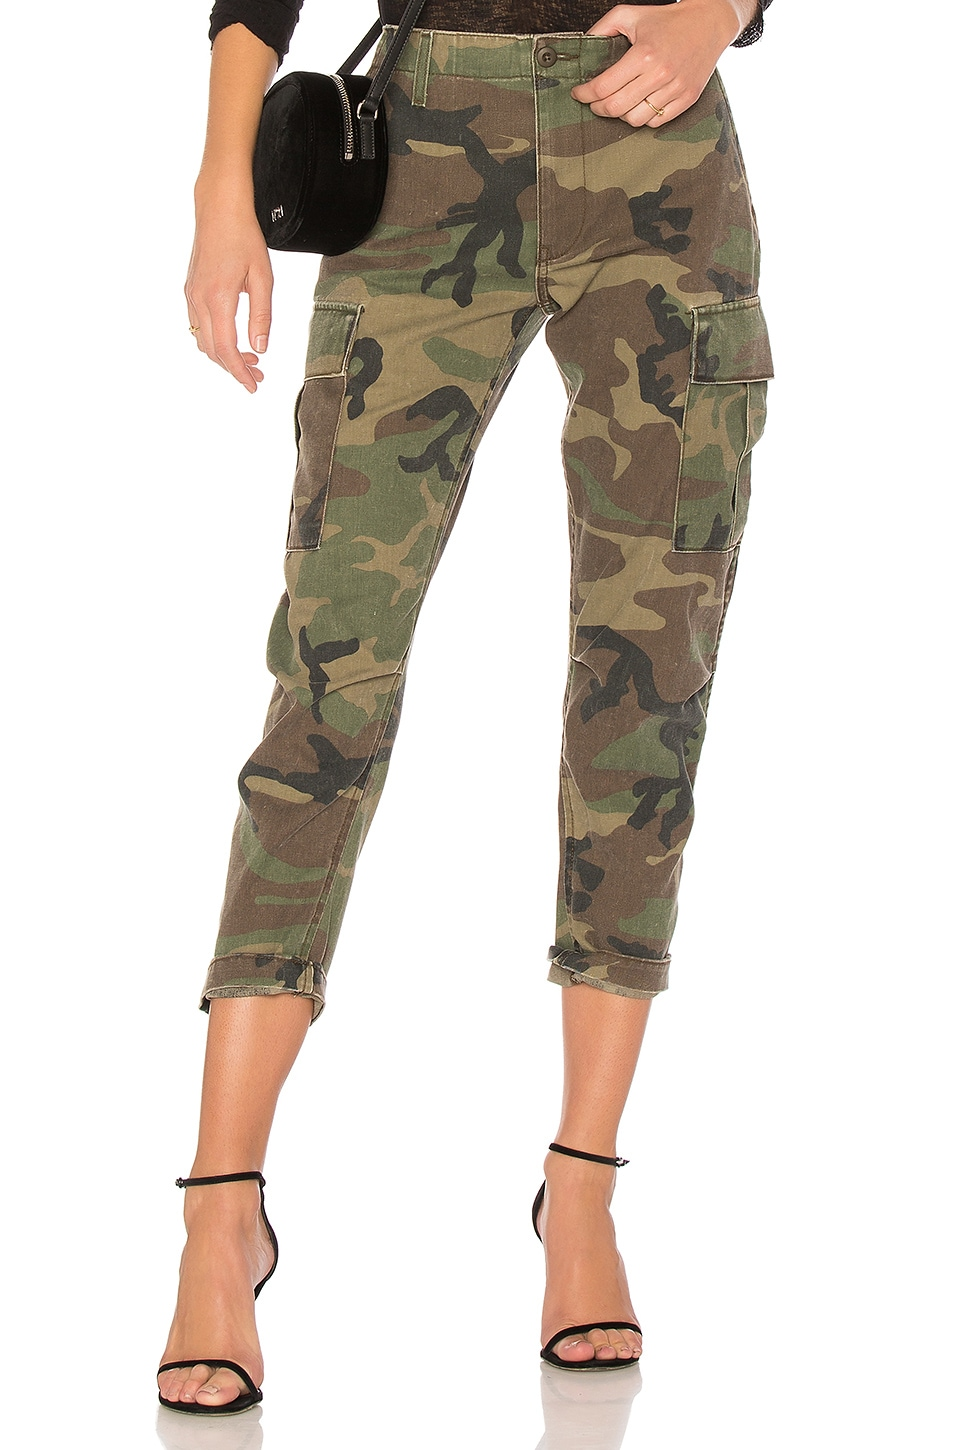 RE/DONE Originals Cargo Pants in Camo